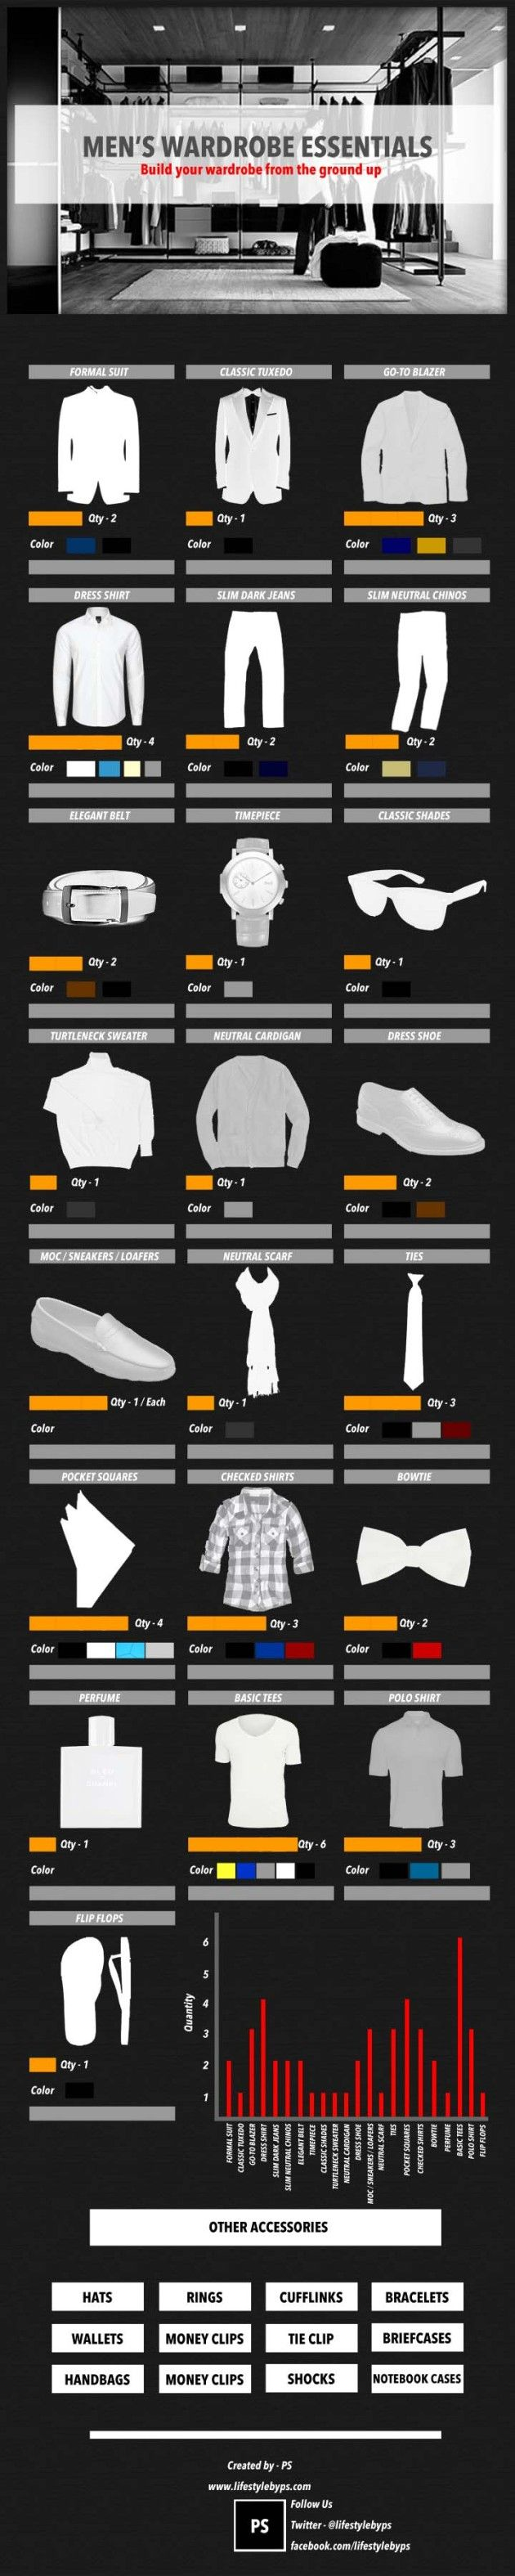 Build Your Wardrobe from the Ground Up (infographic) #infographic #wardrobe #menstyle